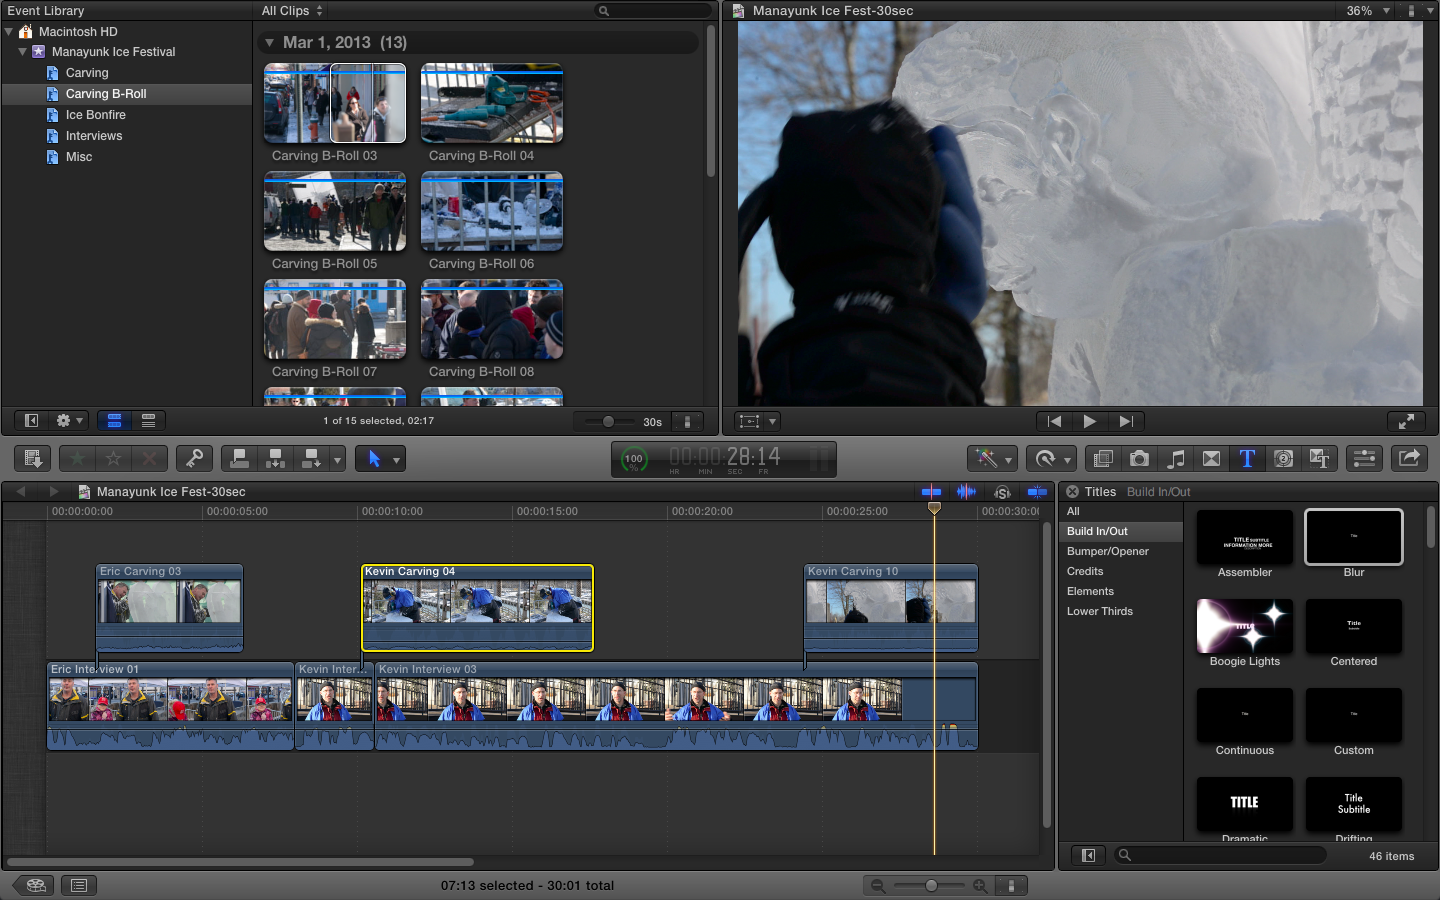 Manayunk Ice Festival - 30 Sec Rough Cut - image 1 - student project